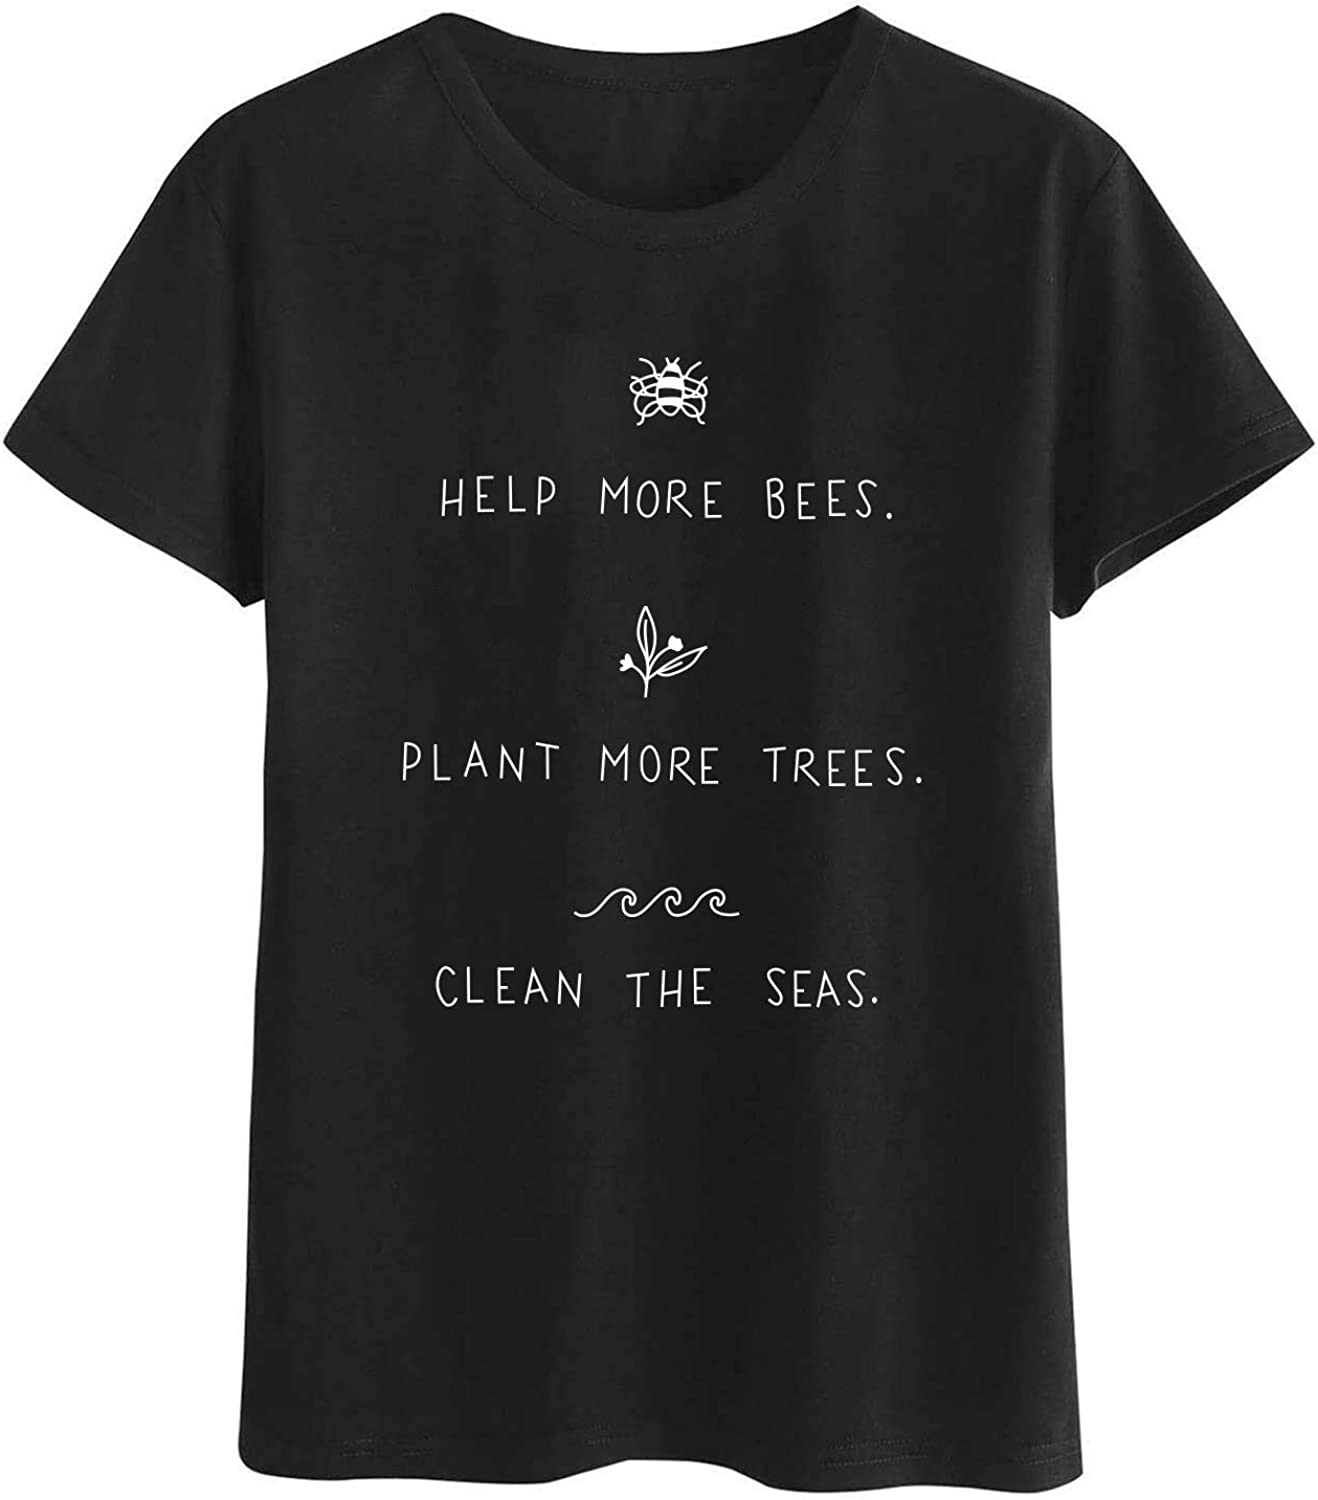 Rocksir Plant These Save The Bees Theme Womens Graphic Tee Girls Cute Gold Yellow T-Shirts…